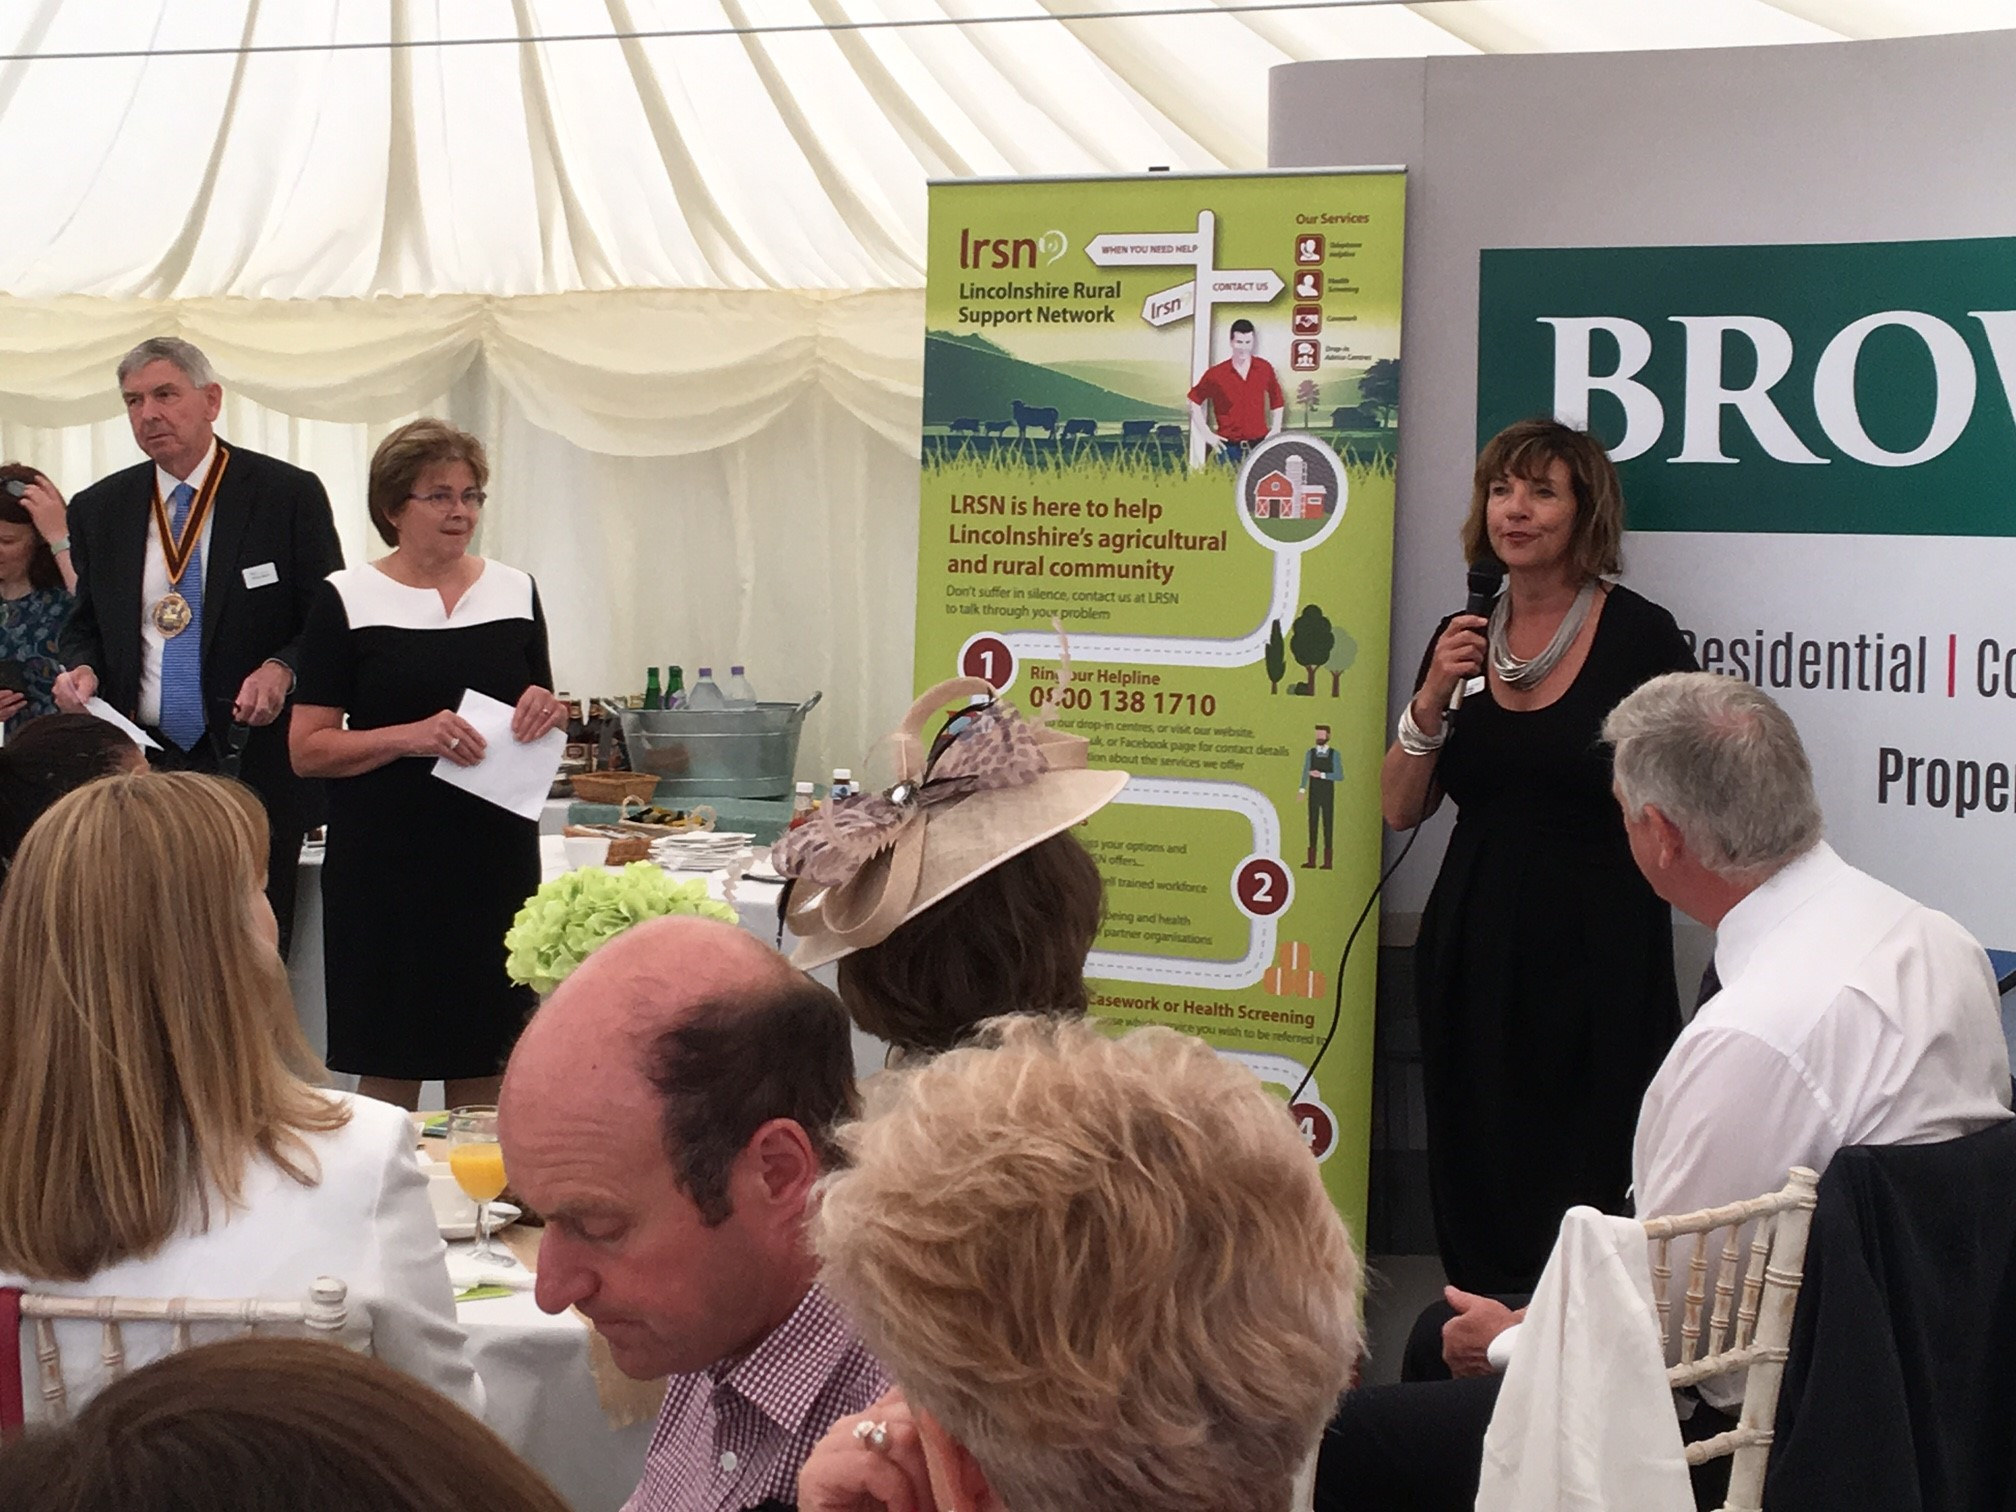 LRSN's Chairman Meryl Ward and Project Manager, Alison Twiddy, addressing guests at the LRSN Breakfast meeting